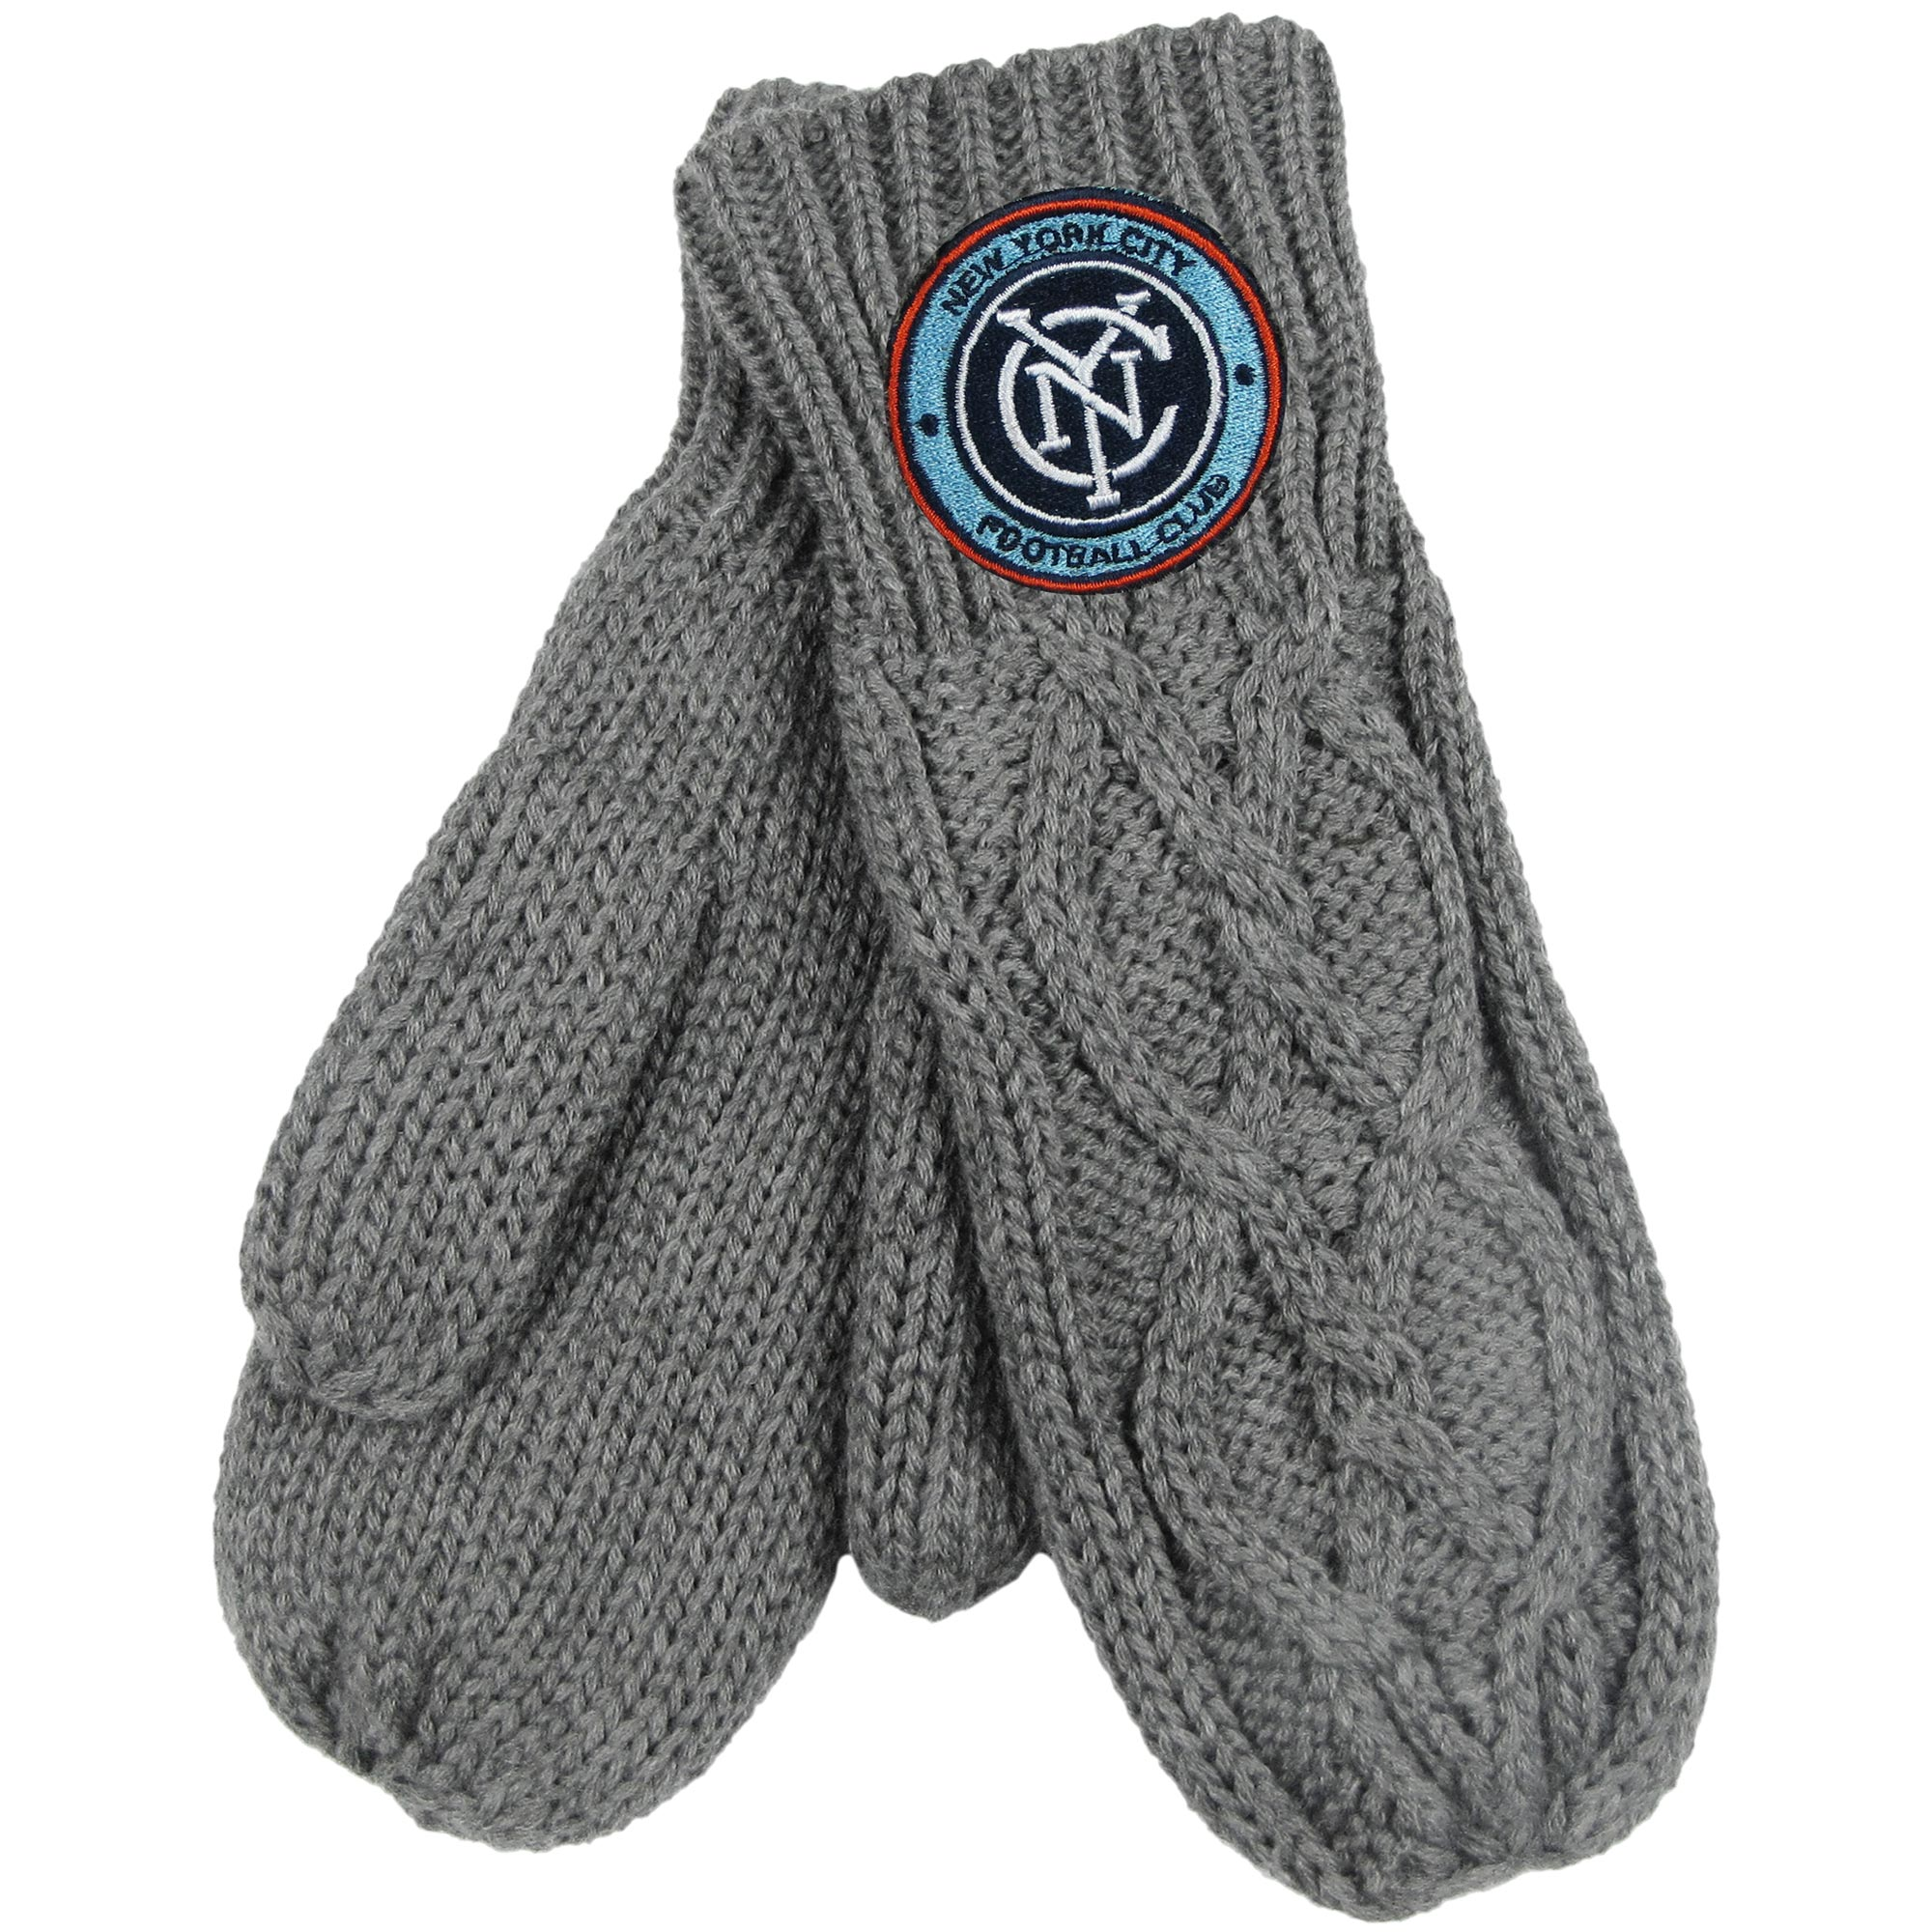 New York City FC ZooZatz Women's Cable Knit Mittens - Charcoal - No Size